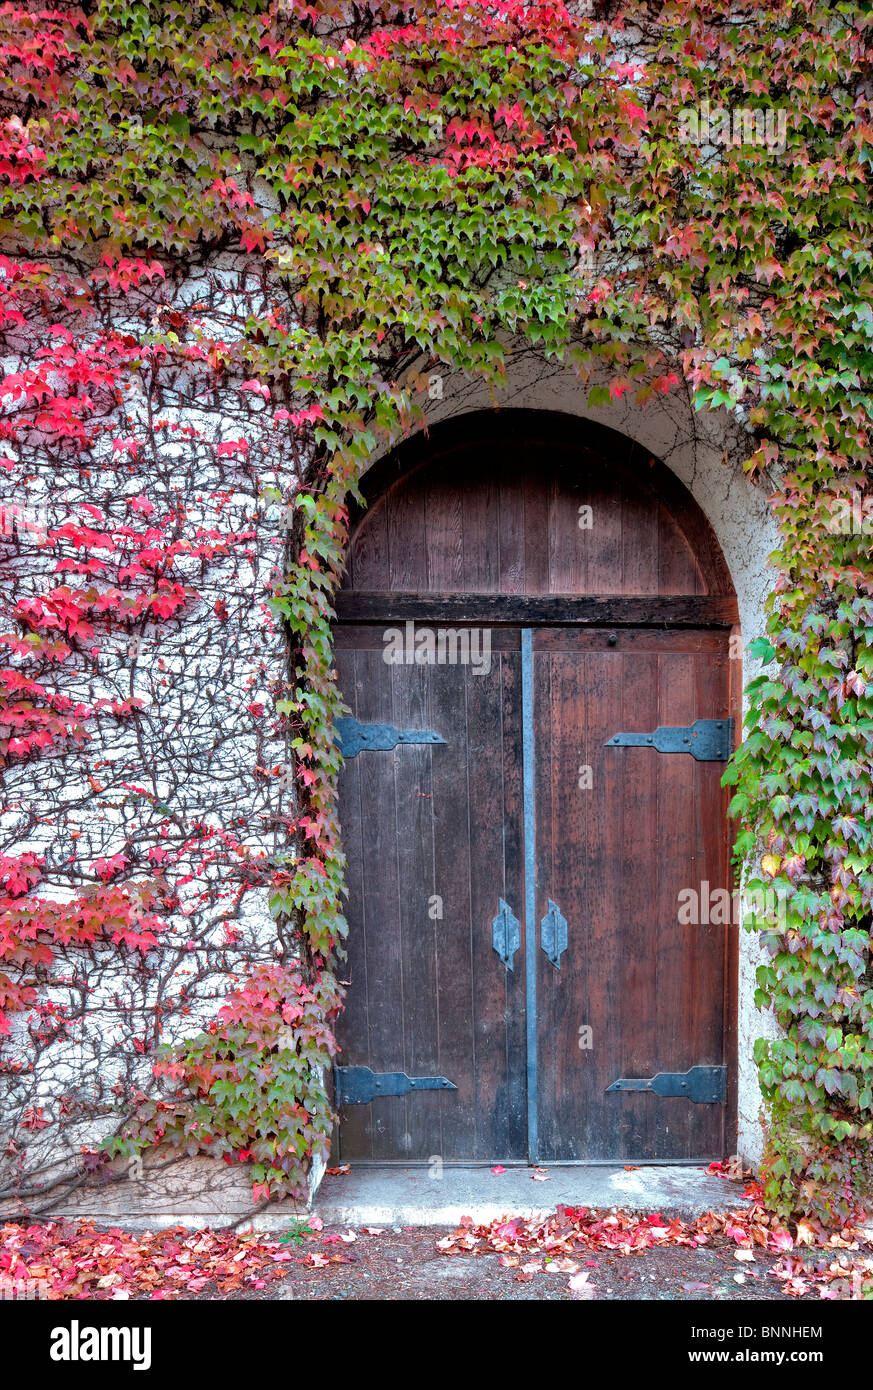 Door will fall colored ivy. Grgich Hills Estate. Napa Valley, California - Stock Image